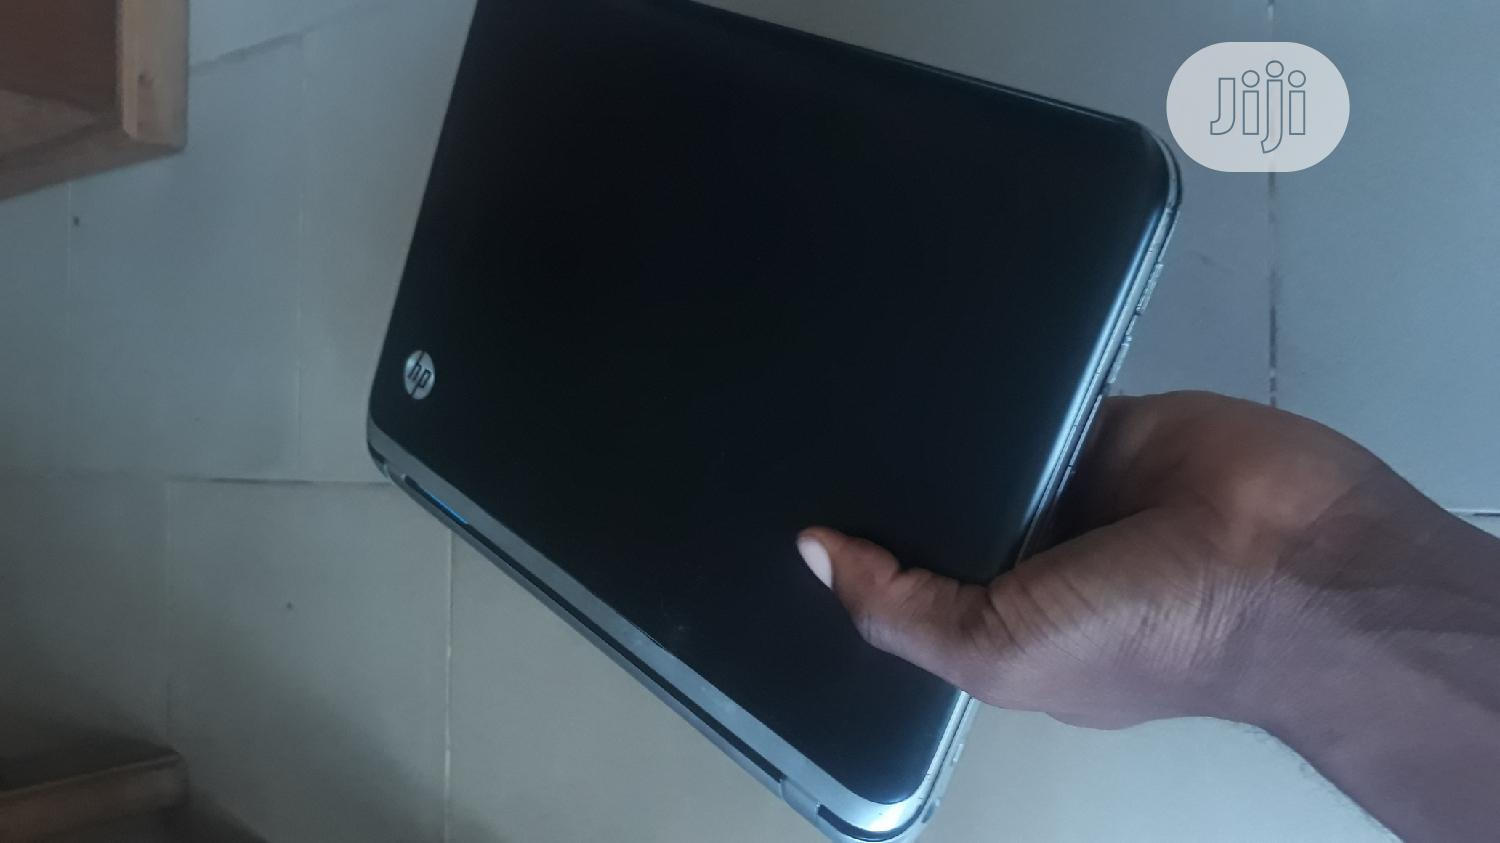 Laptop HP Chromebook X2 4GB AMD HDD 256GB   Laptops & Computers for sale in Aba South, Abia State, Nigeria